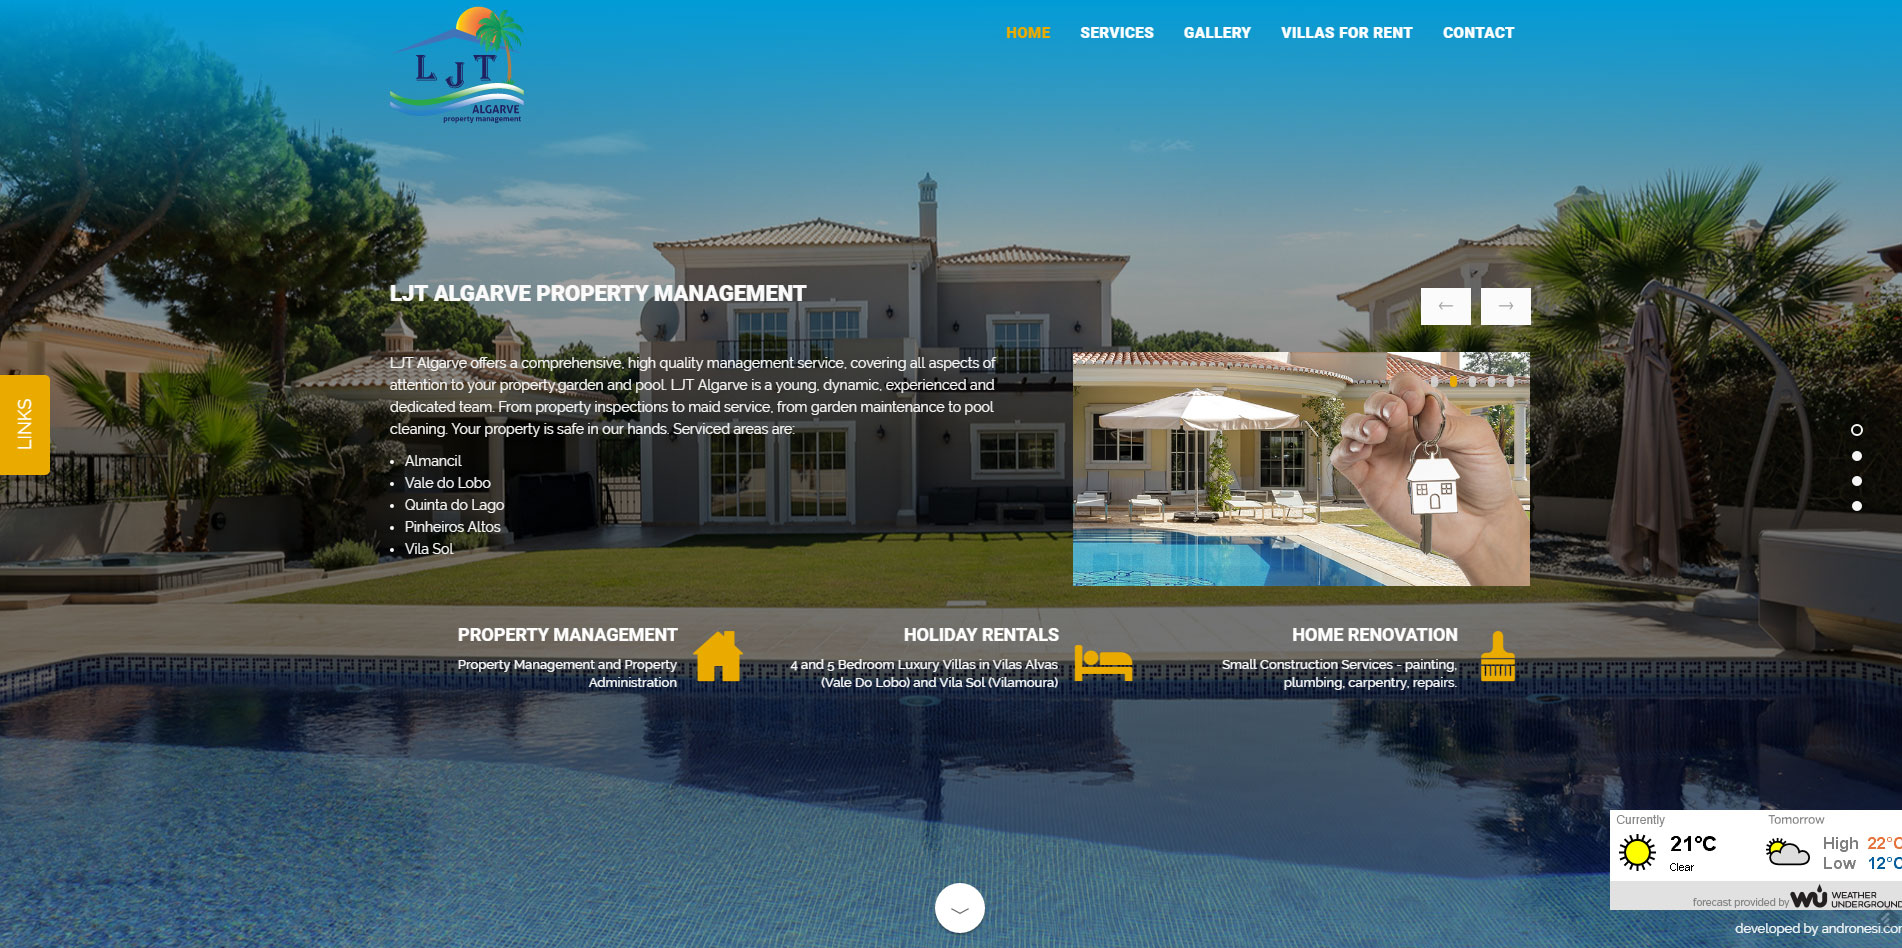 responsive website design for LJT Algarve